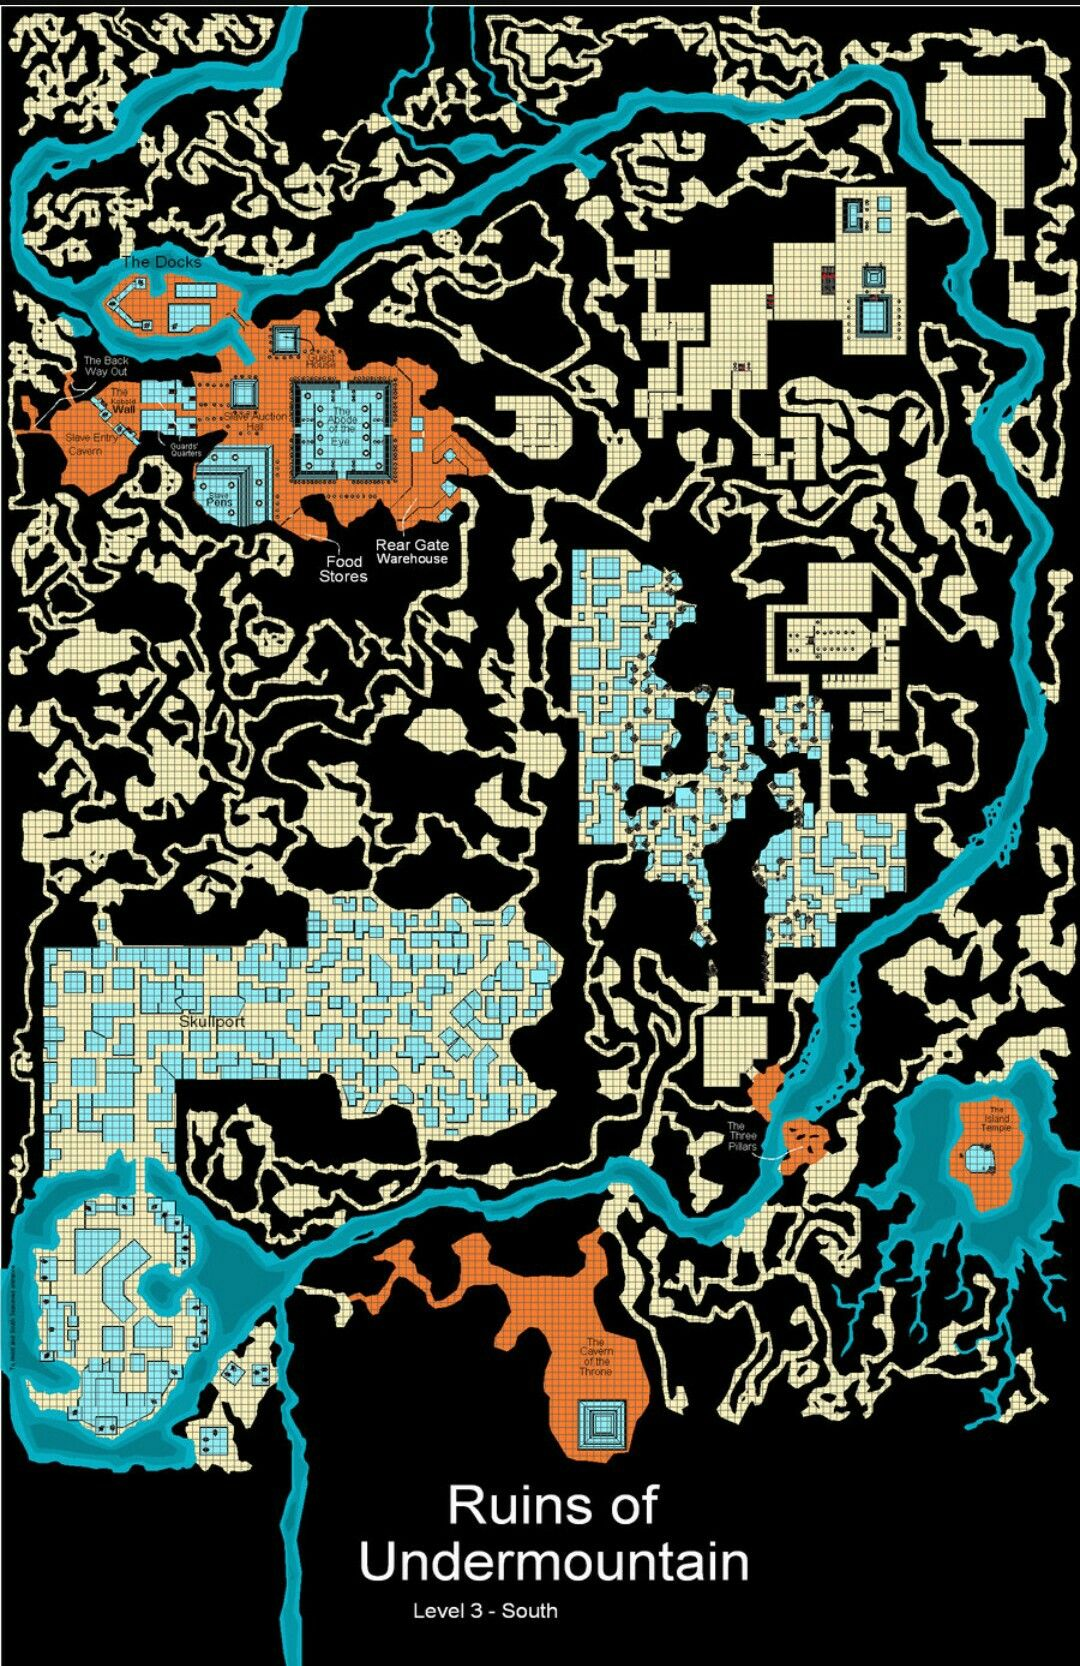 Pin by Screachinelf on Dungeon maps in 2020 Fantasy city